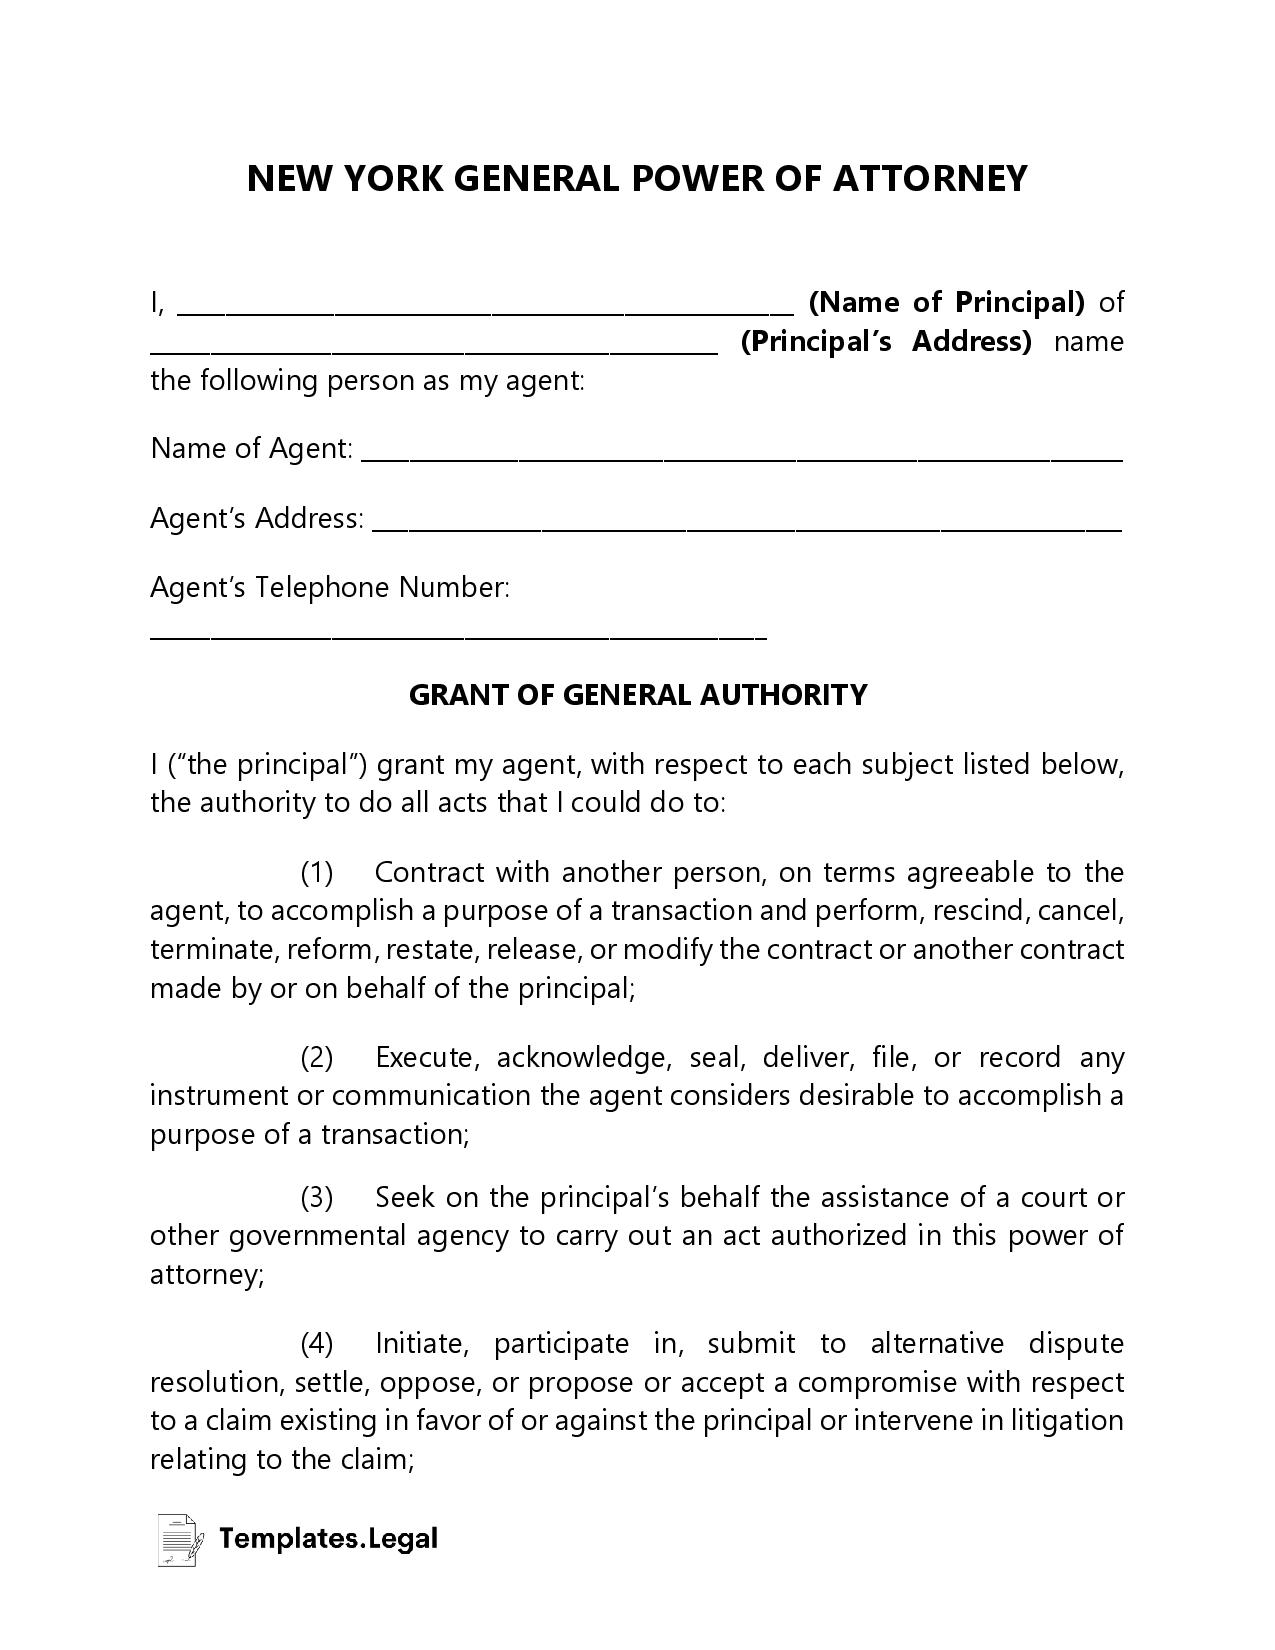 New York General Power of Attorney - Templates.Legal